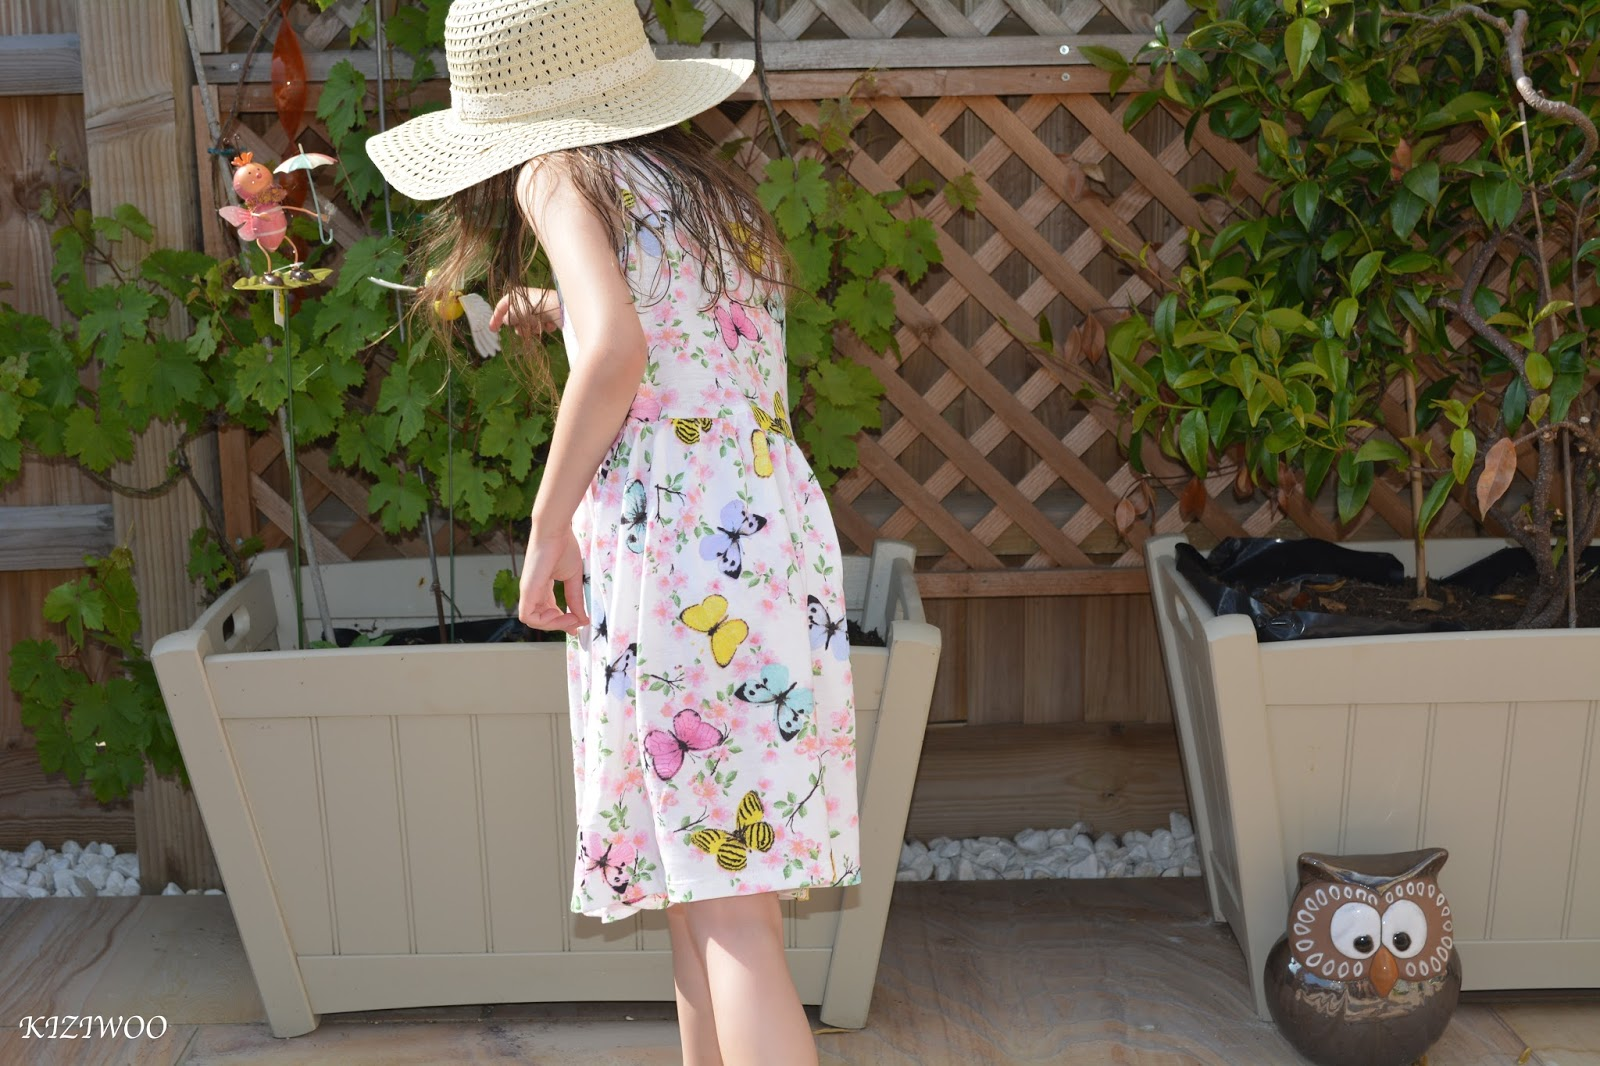 84ae0486095f3 Today s post is featuring Kizzy in her H M Sleeveless Jersey Dresses. H M  currently has an  in-store  offer on these great little summer dresses.